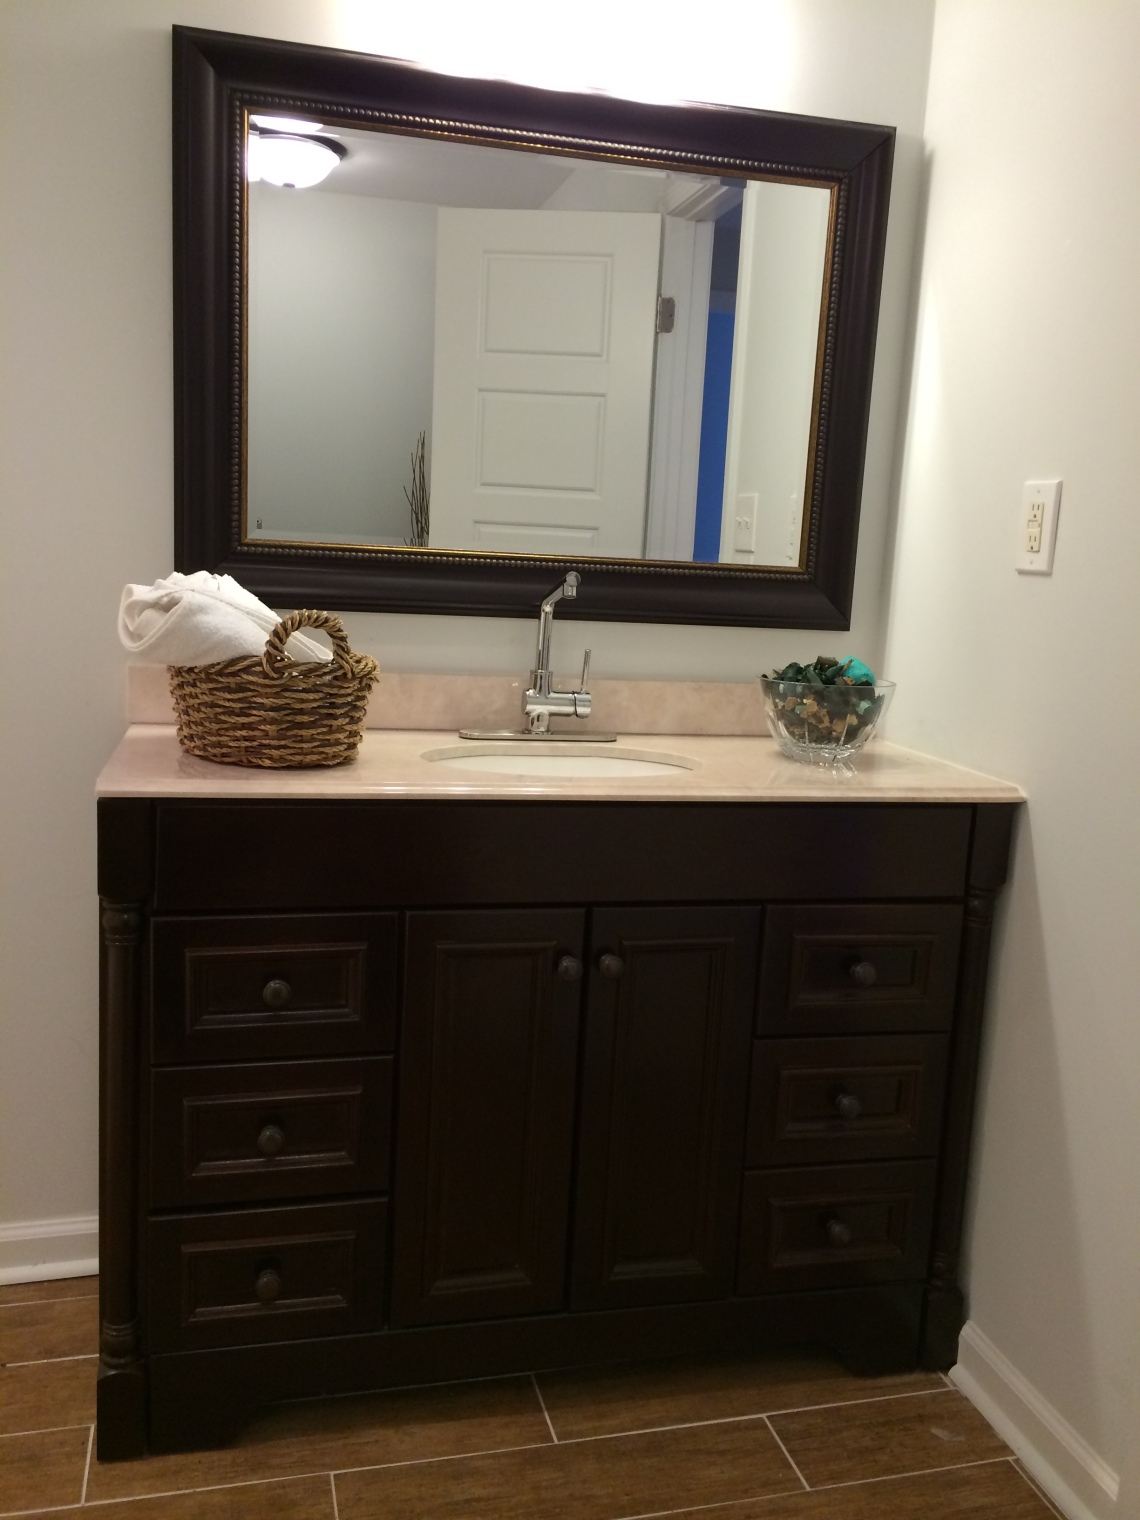 1442-thomas-basement-vanity-3-9